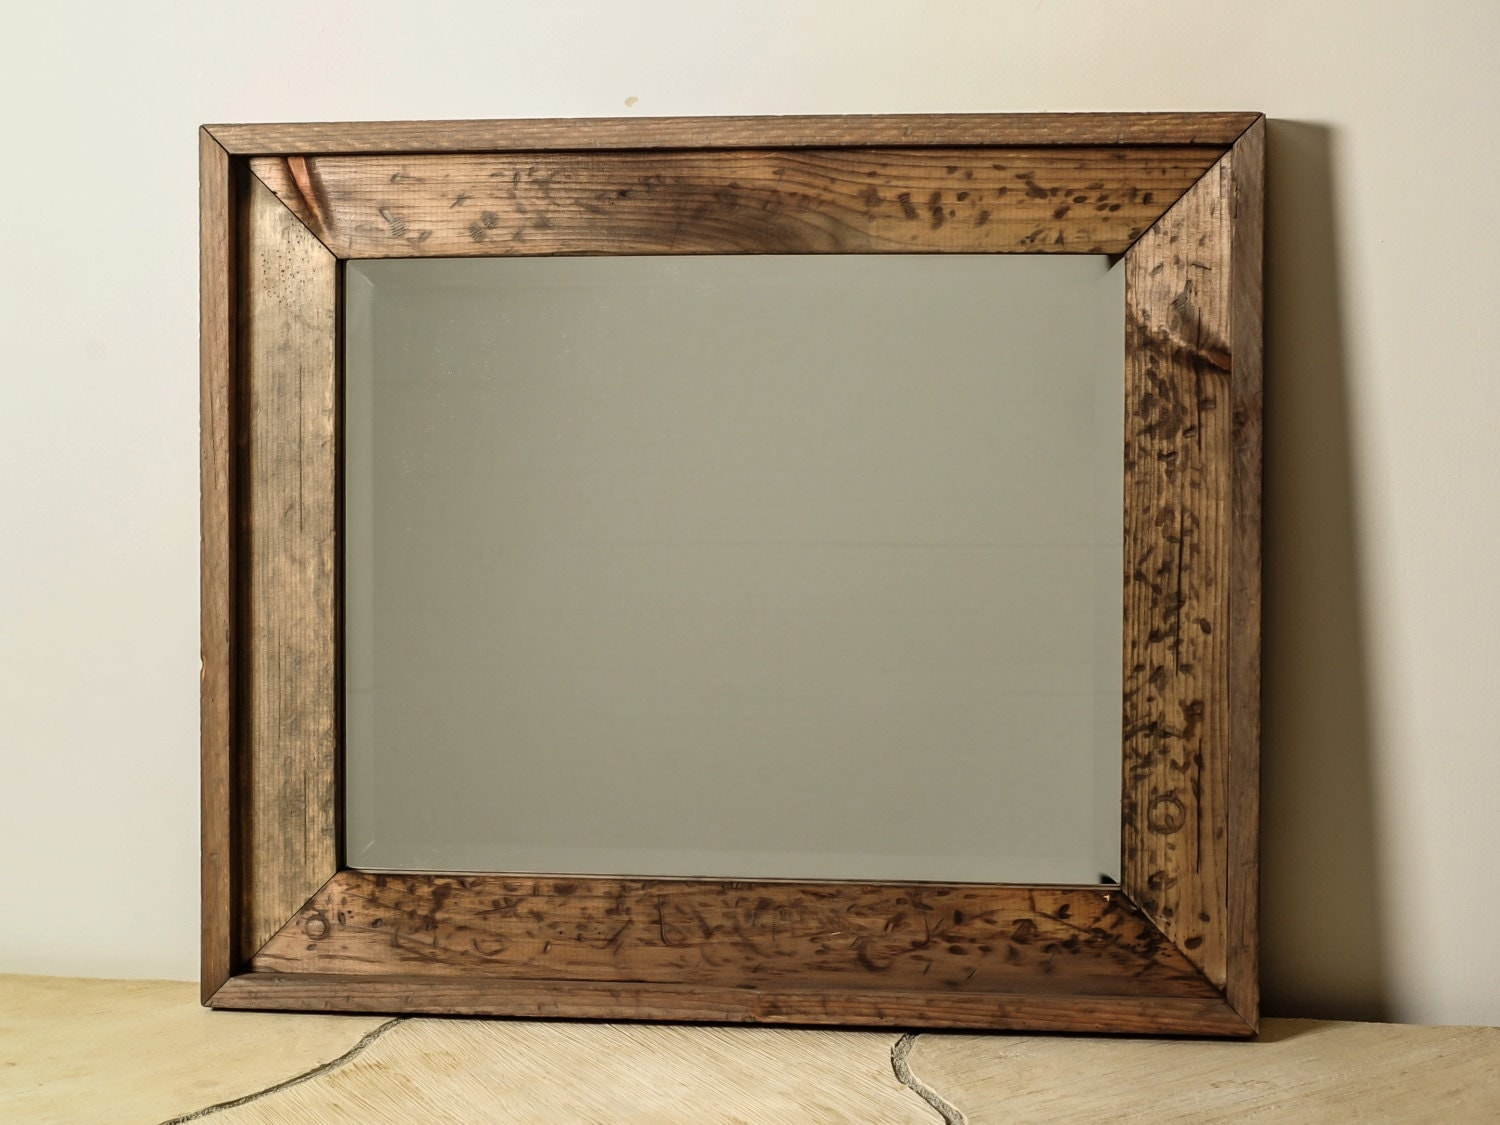 Bathroom mirrors framed diy - Large Distressed Wood Mirror By Englertandenglert On Etsy